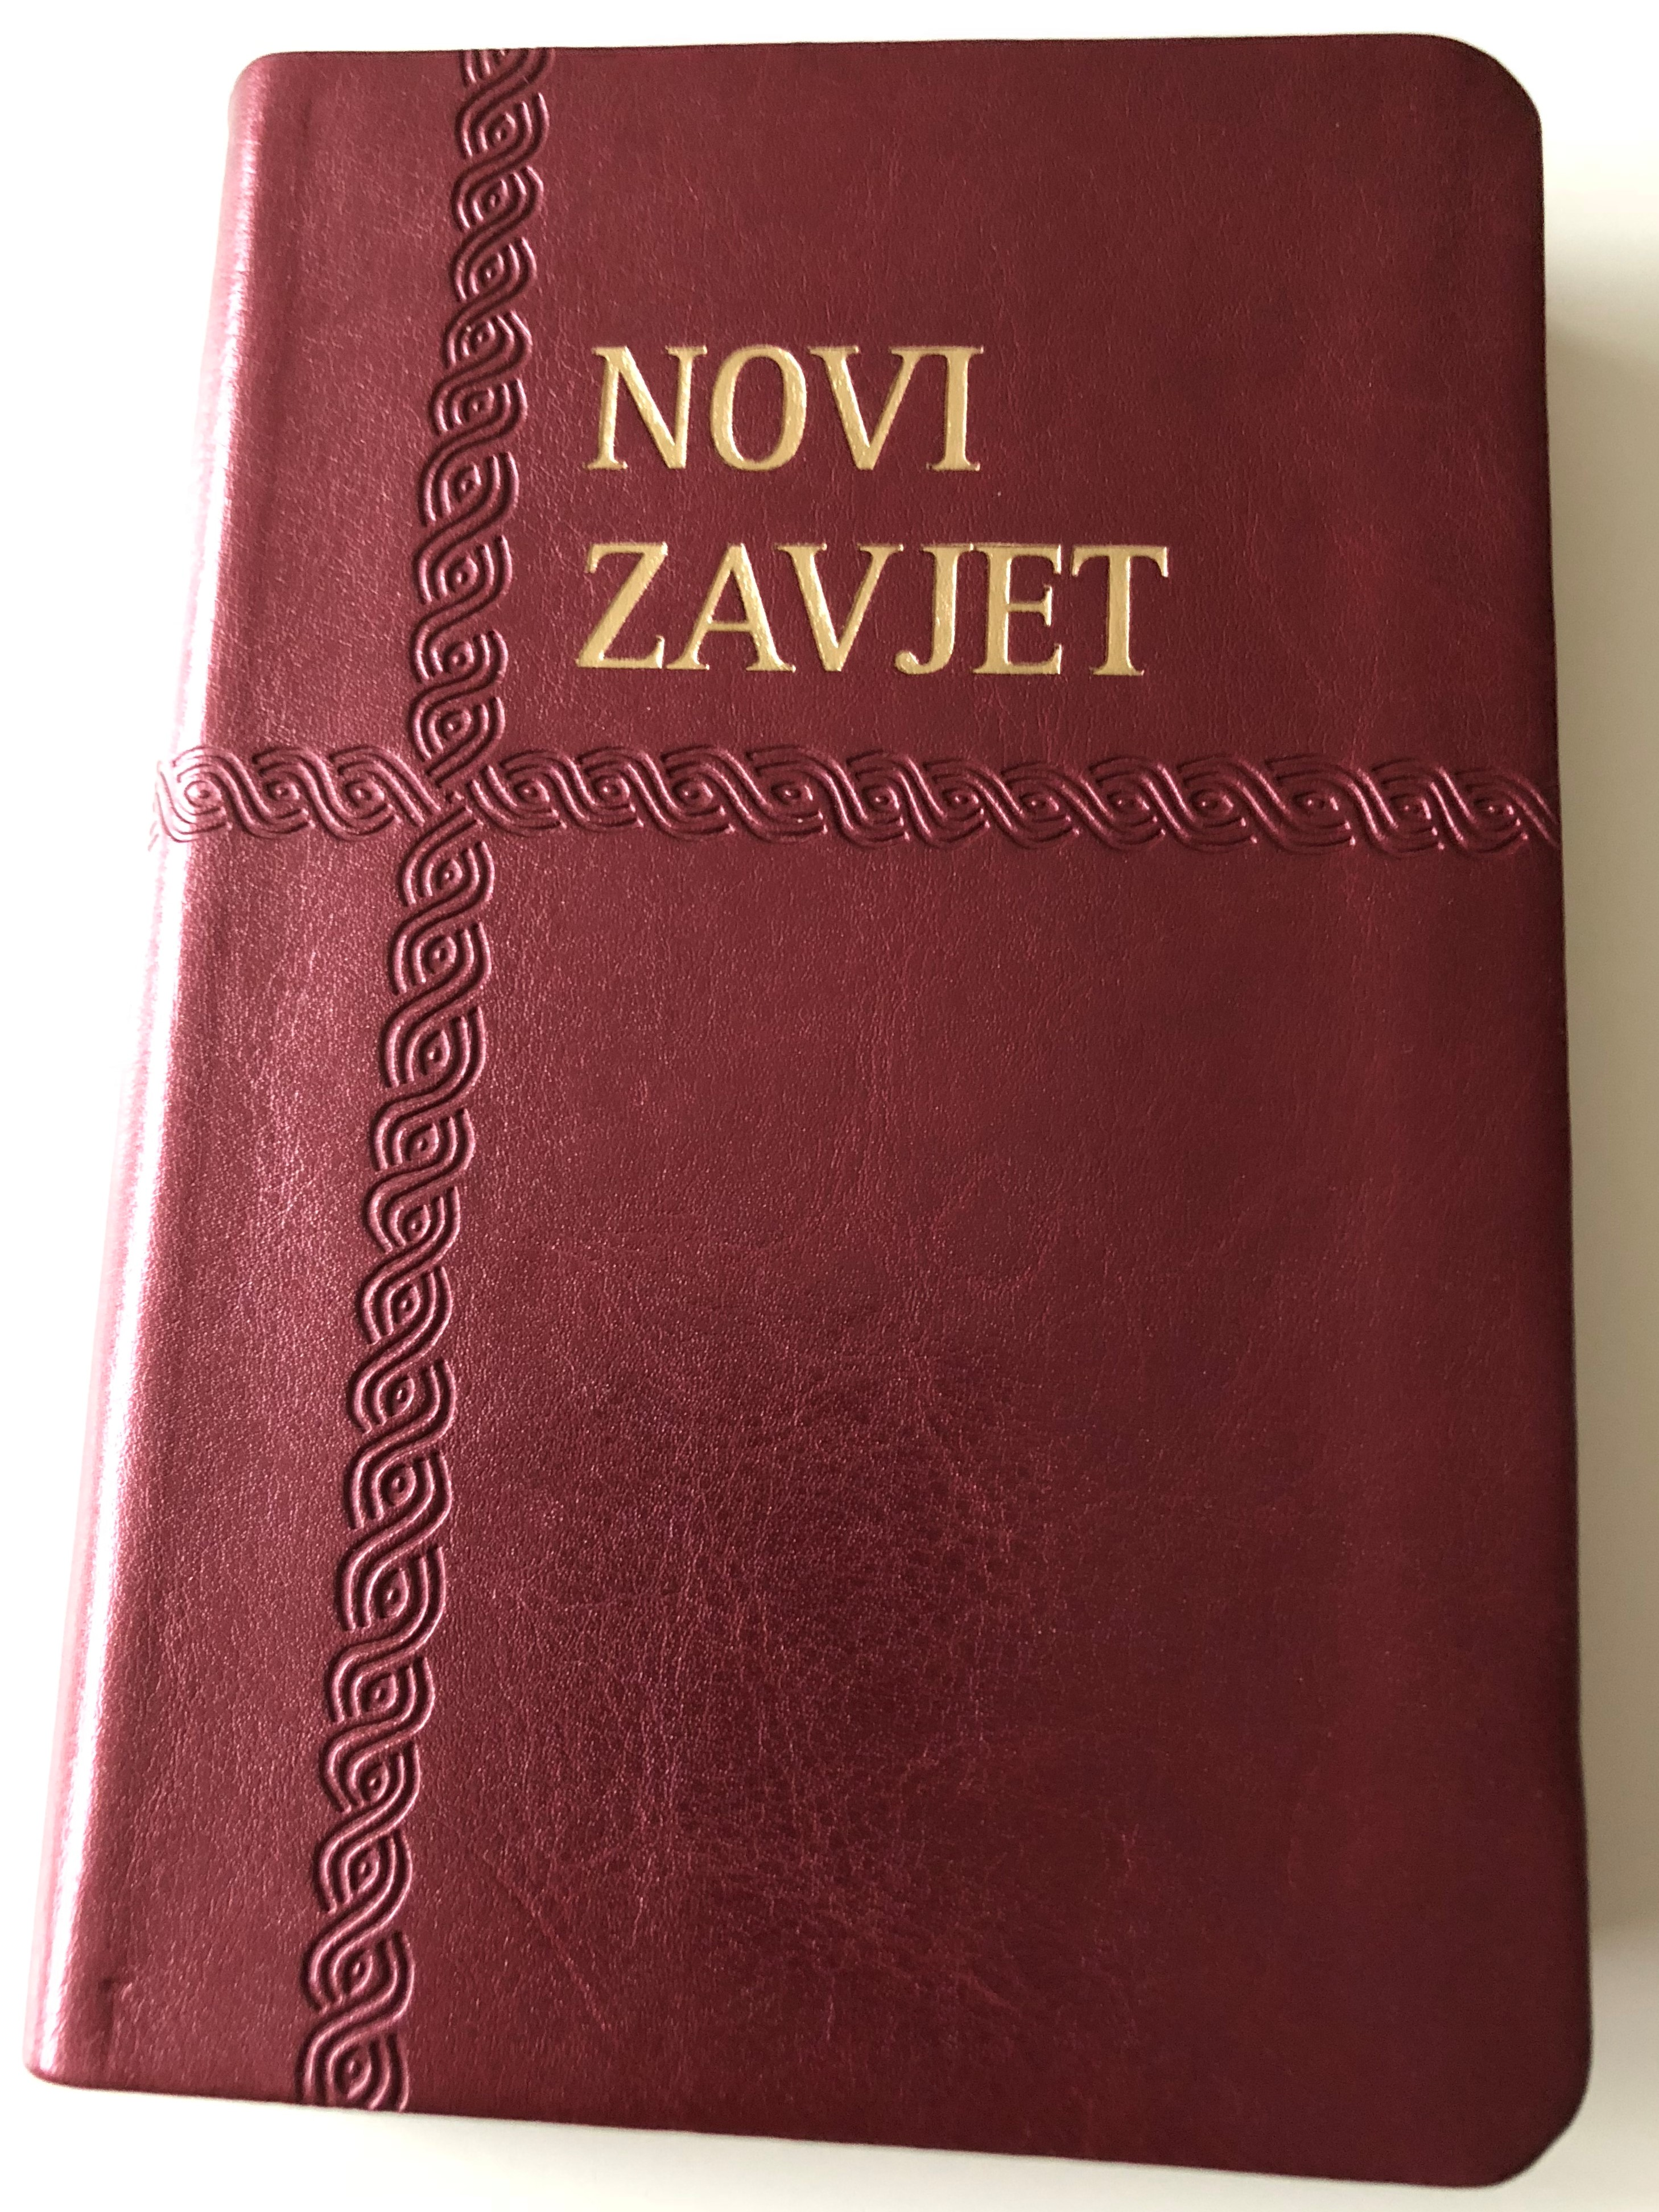 novi-zavjet-new-testament-in-croatian-language-burgundy-leather-bound-golden-edges-1-.jpg